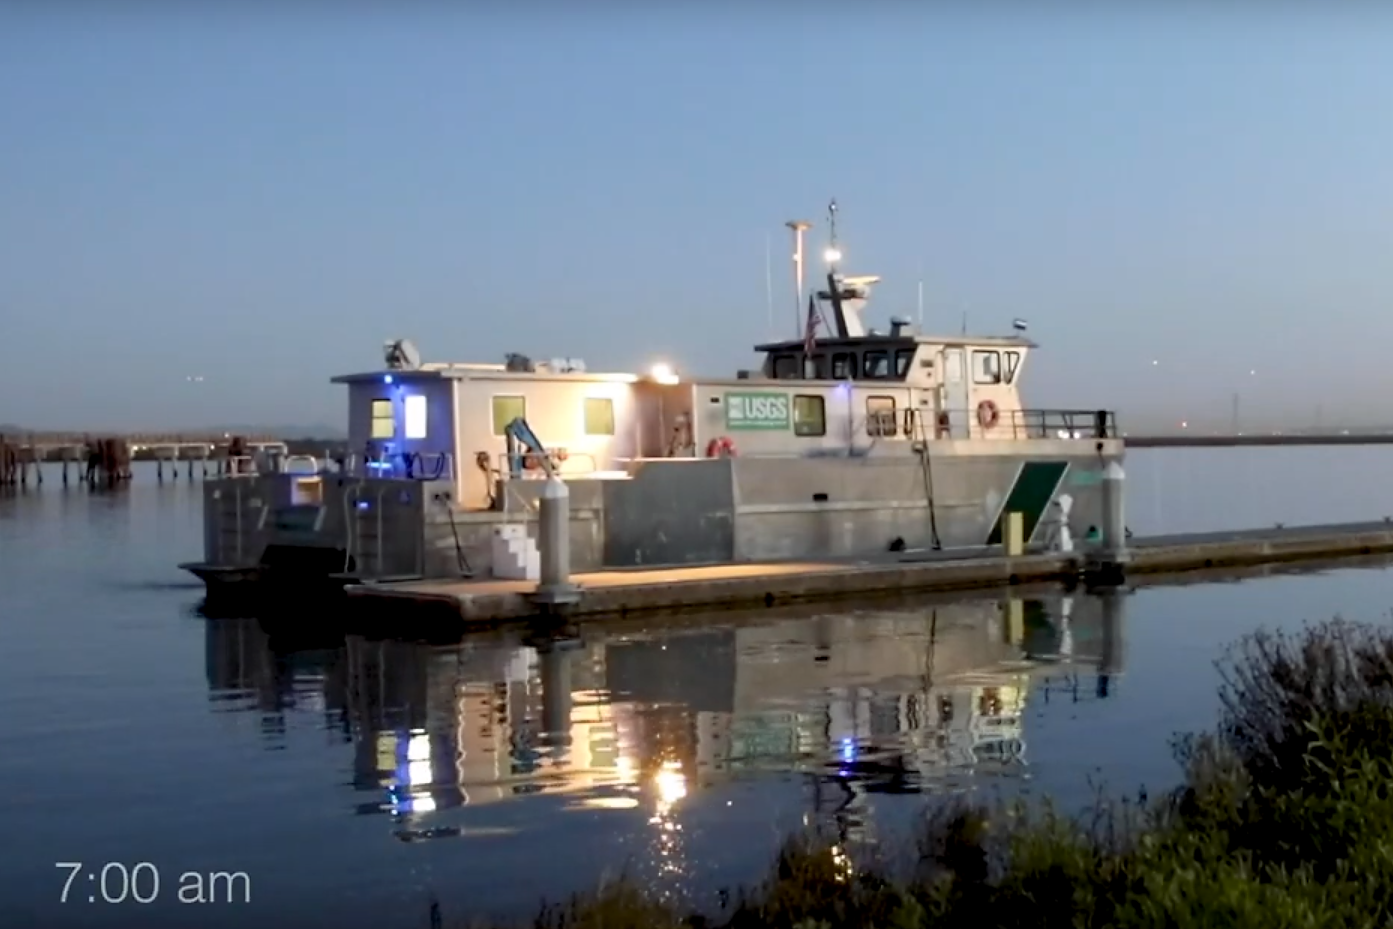 USGS research vessel in the morning